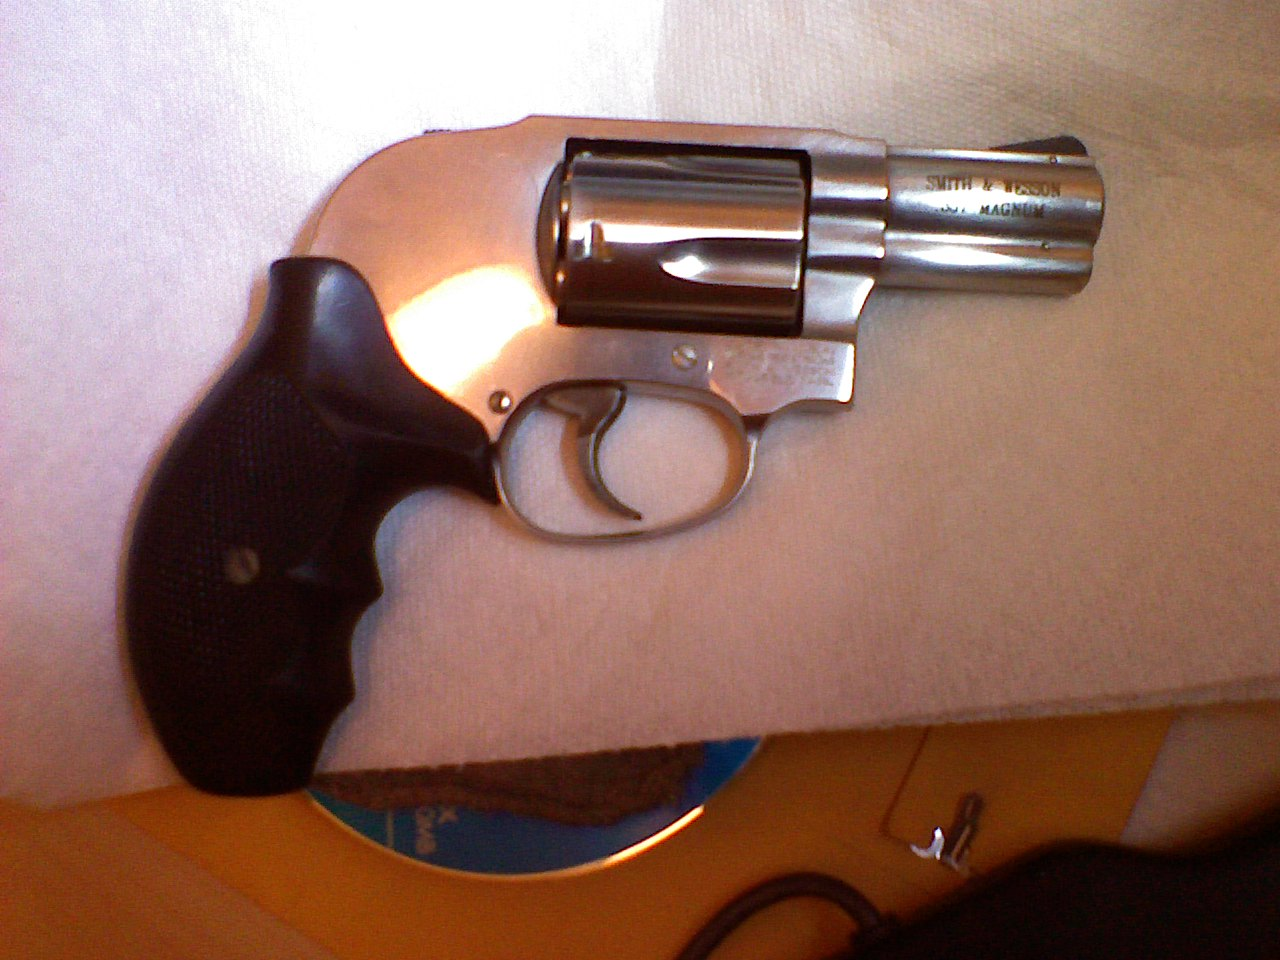 Brought Home A S&W 649 Today-357.jpg